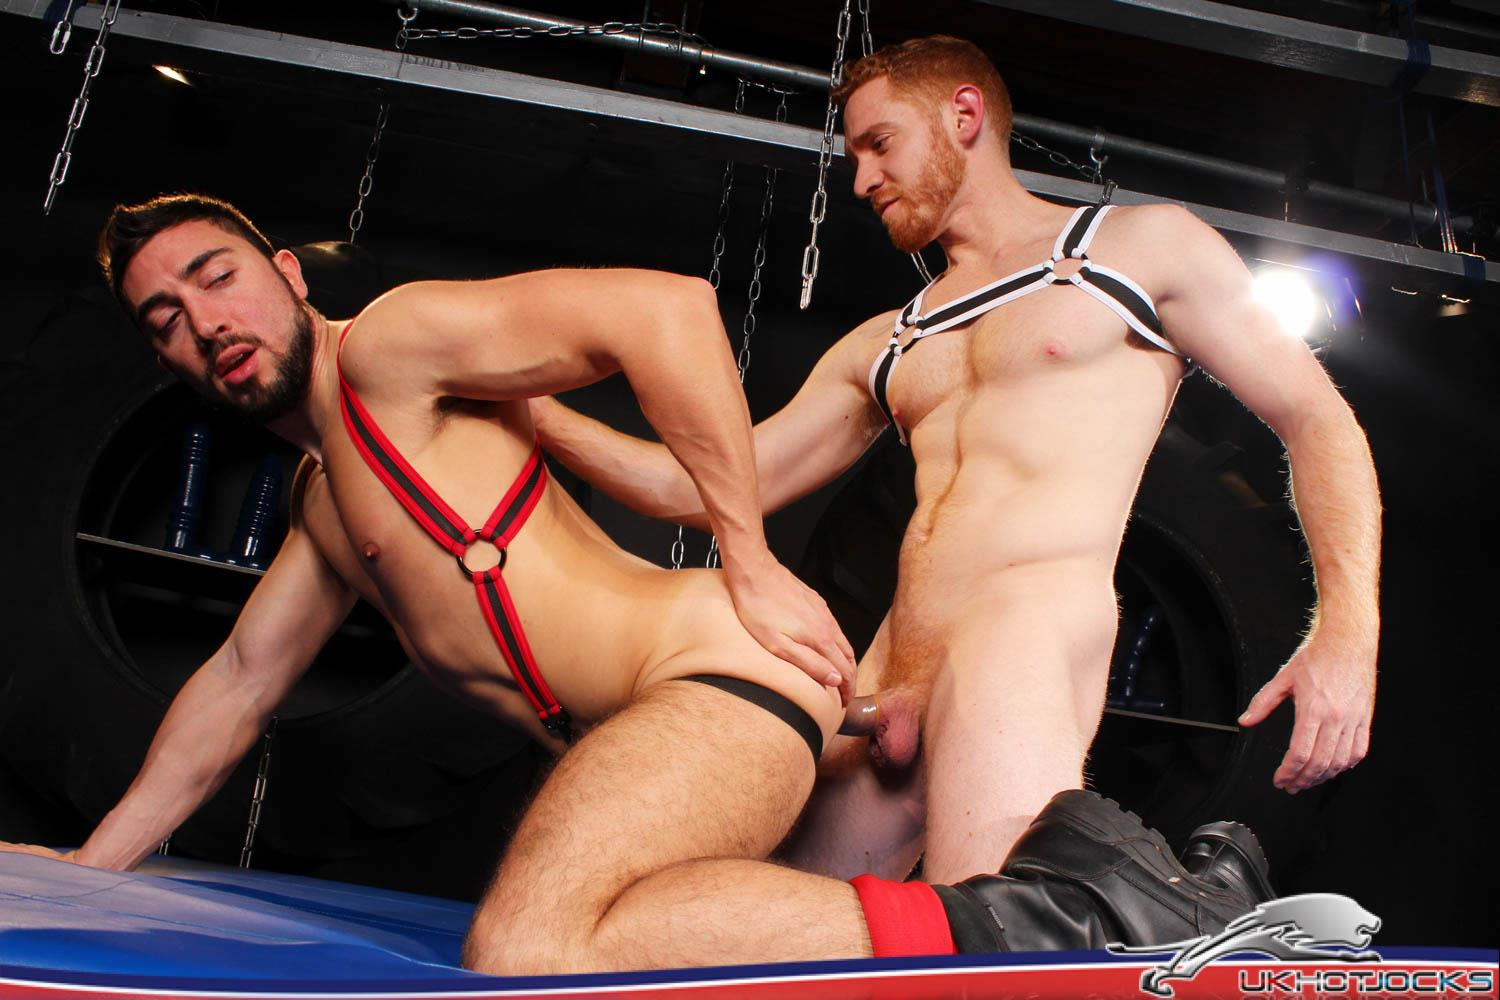 UK-Hot-Jocks-Gaston-Croupier-and-Leander-Big-Uncut-Ginger-Cock-20 Gaston Croupier Takes Leander's Big Uncut Cock And A Huge Dildo!